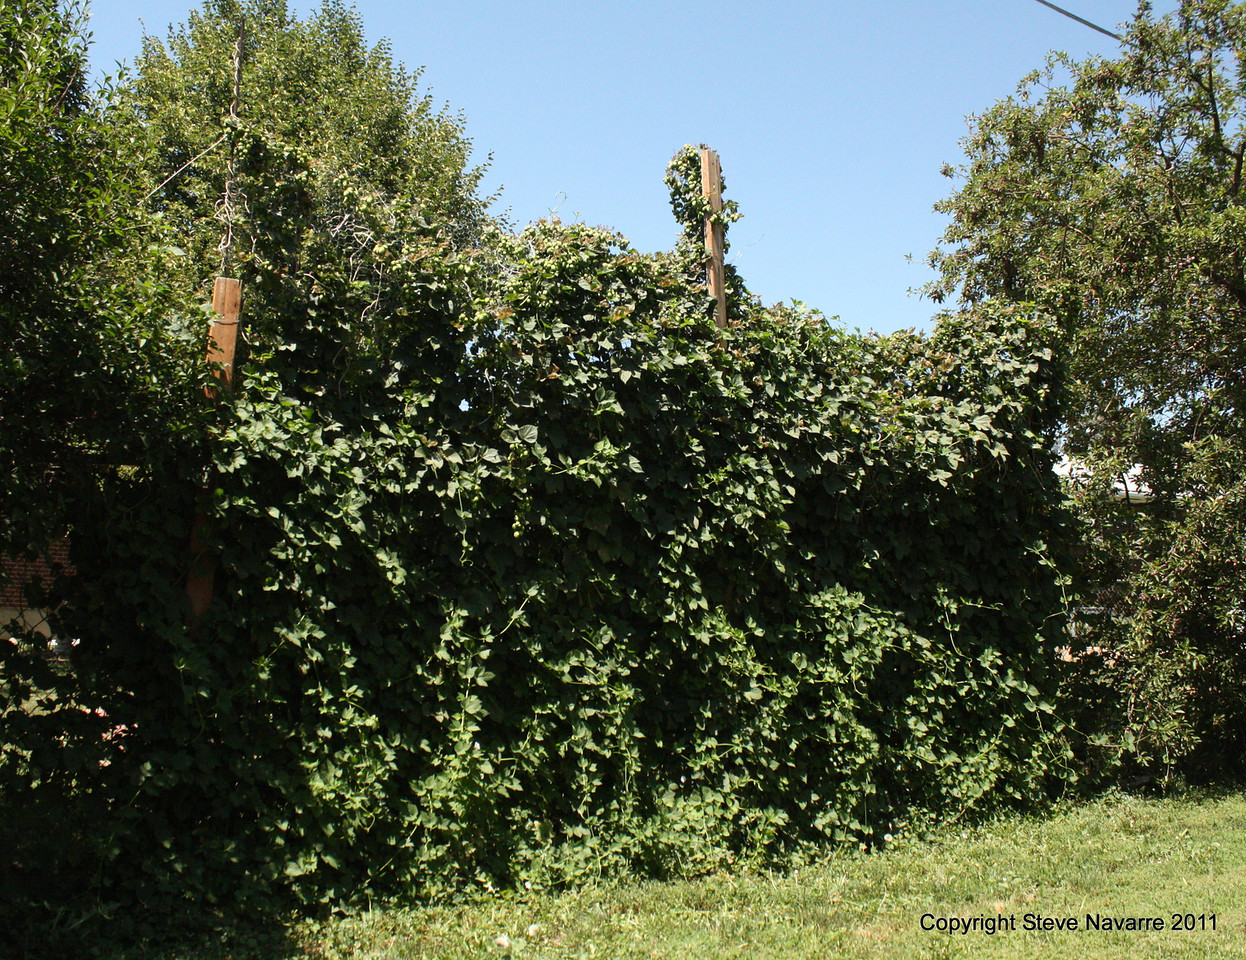 Wall of hops.  Center pole is 10 ft high for perspective.  These plants are about 14 years old.